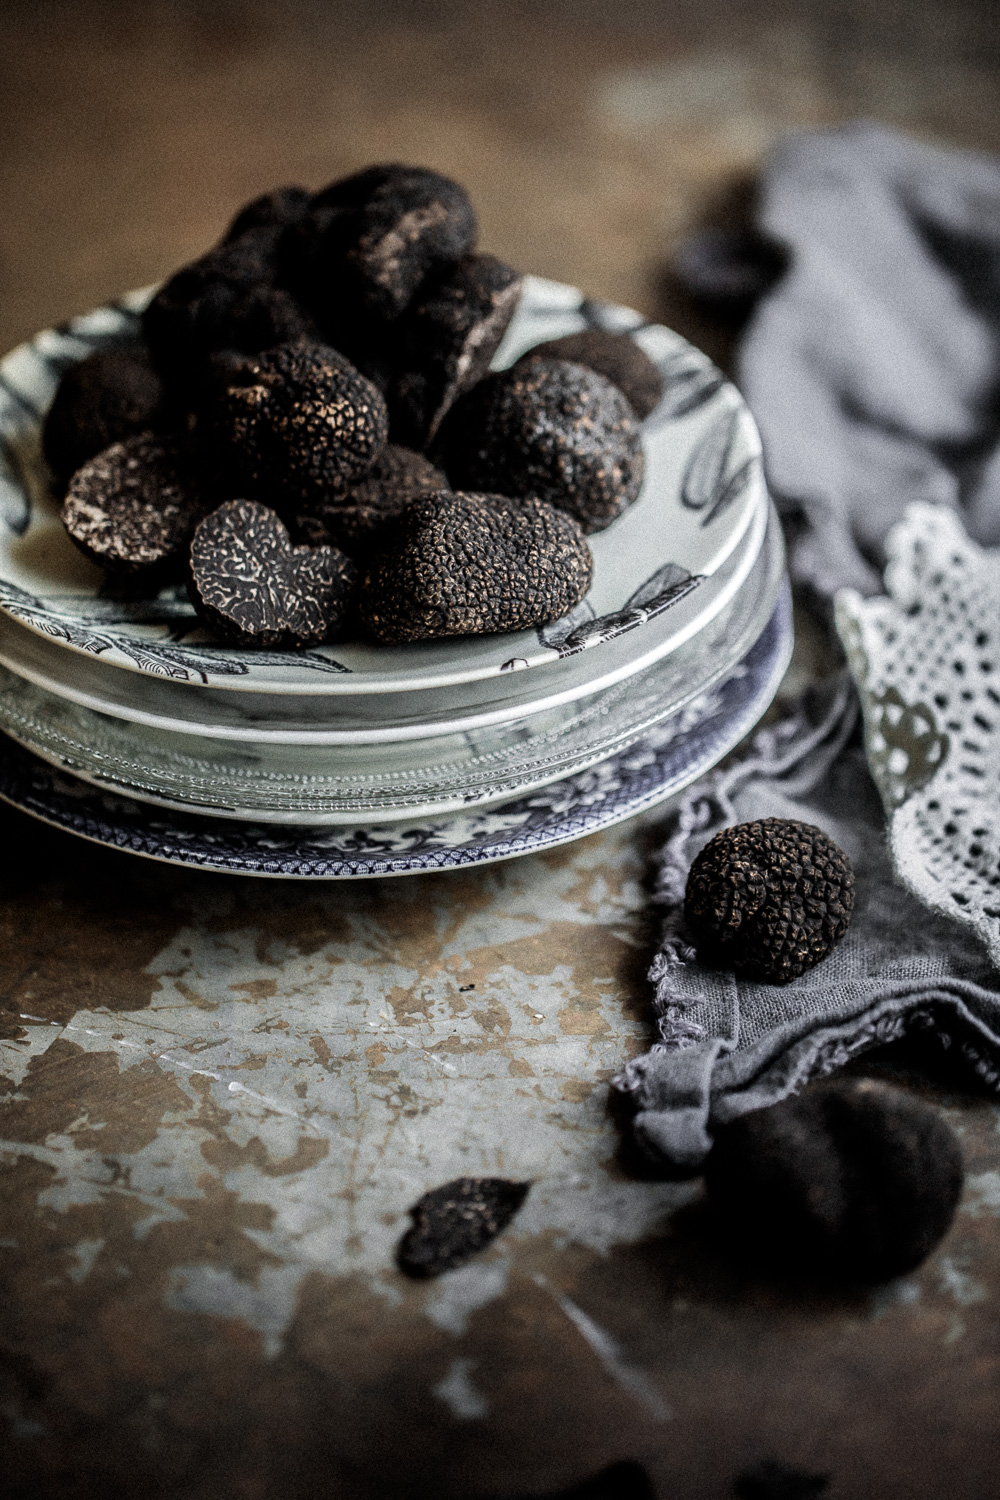 The-Truffle-Farm-Anisa-Sabet-The-Macadames-Food-Travel-Lifestyle-Photographer-5934